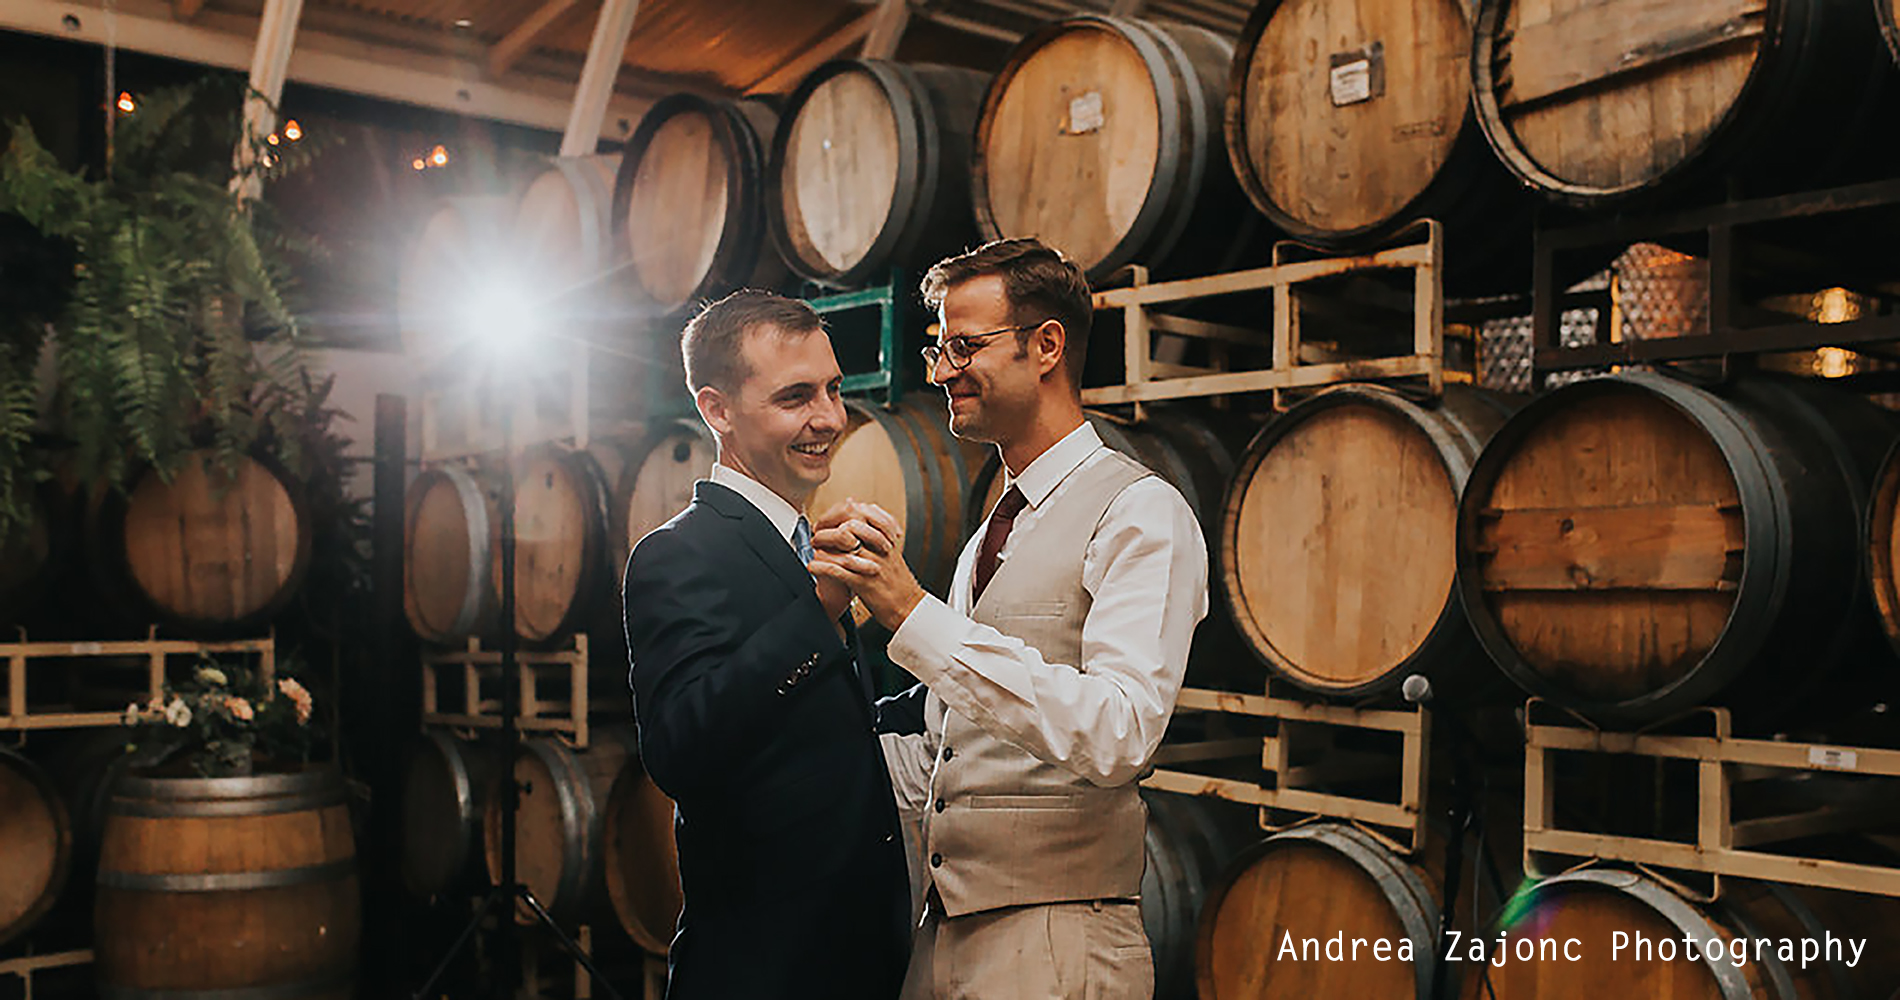 Andrea_Zajonc_Photography_Weddings_Wedding_Events_Design_Wedding_Cake_Corporate_Business_Meeting_Sales_Training_Event_Marketing_Oregon_Portland_Adventure_Winery_Taproom_Event-Space_Dinner_Party_Restaurant